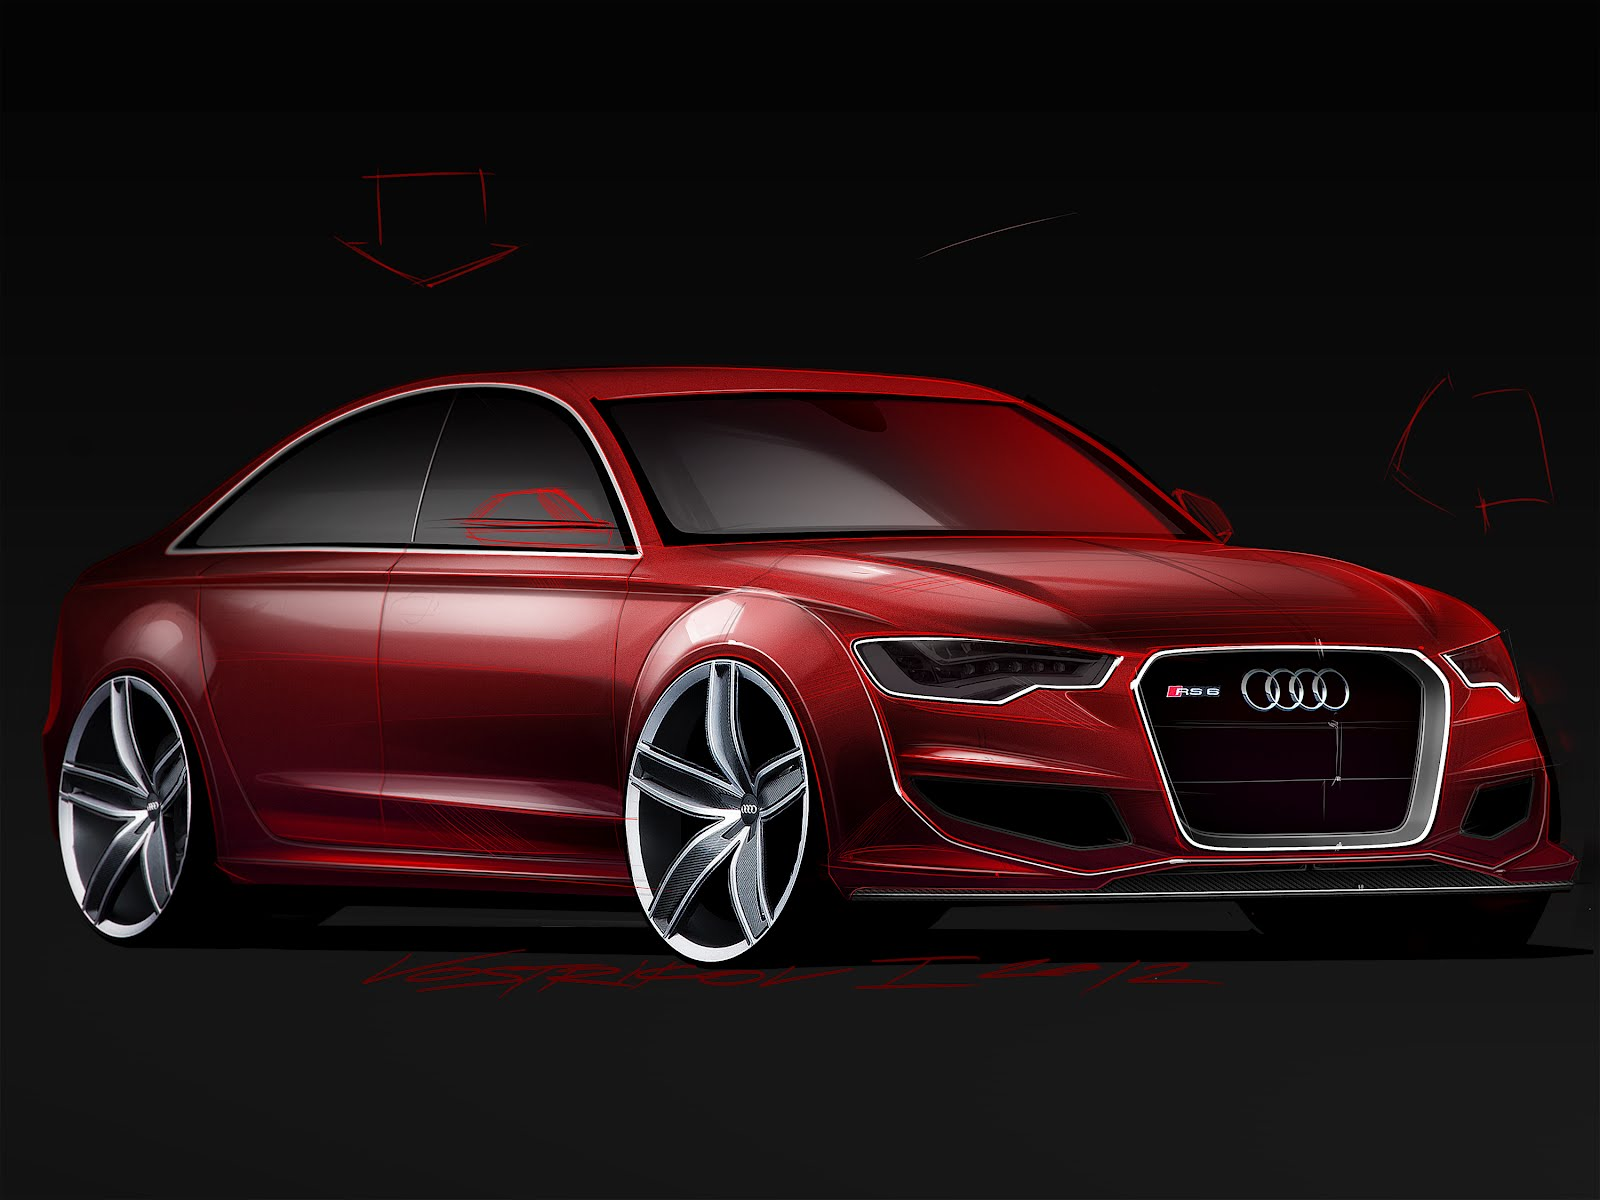 My Vision Of Audi Rs6 Next Gen